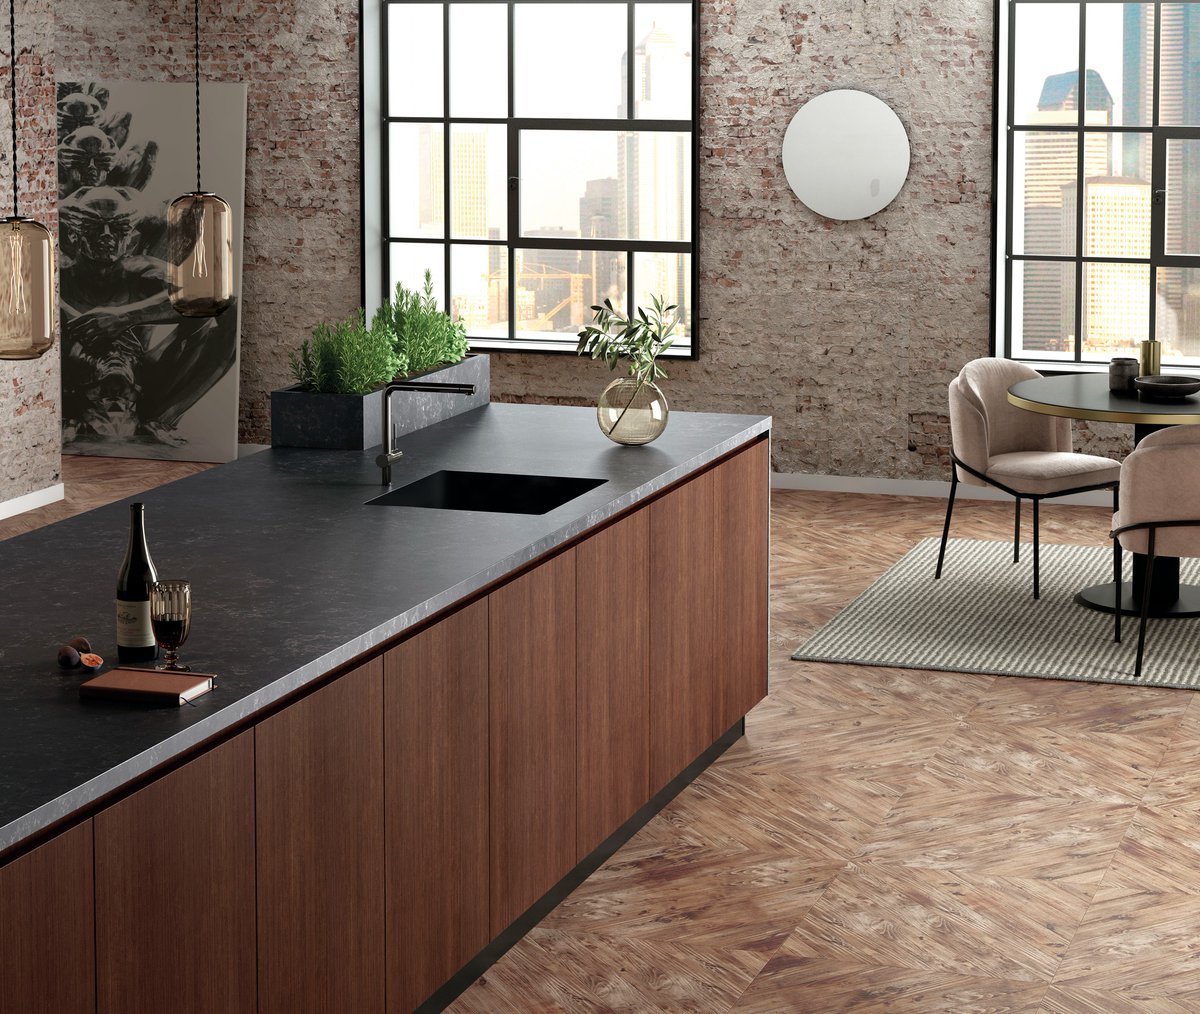 Have you discovered our latest Silestone technologies, HybriQ and HybriQ+? First introduced with our Loft collection, they represent a step beyond our commitment to offer the most sustainable products in the market and work towards a better future bit.ly/HybriQ